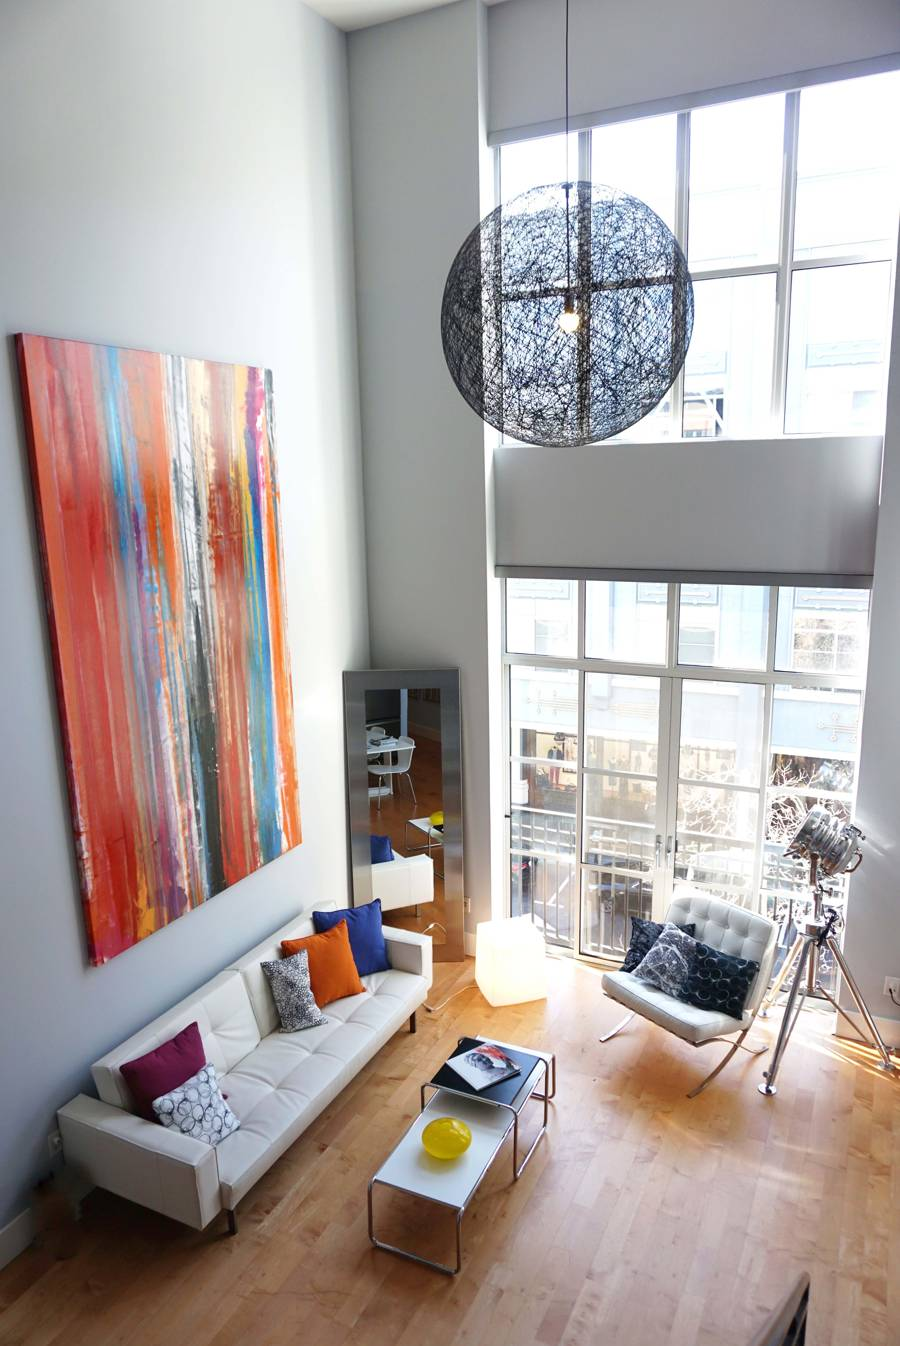 Very large abstract painting